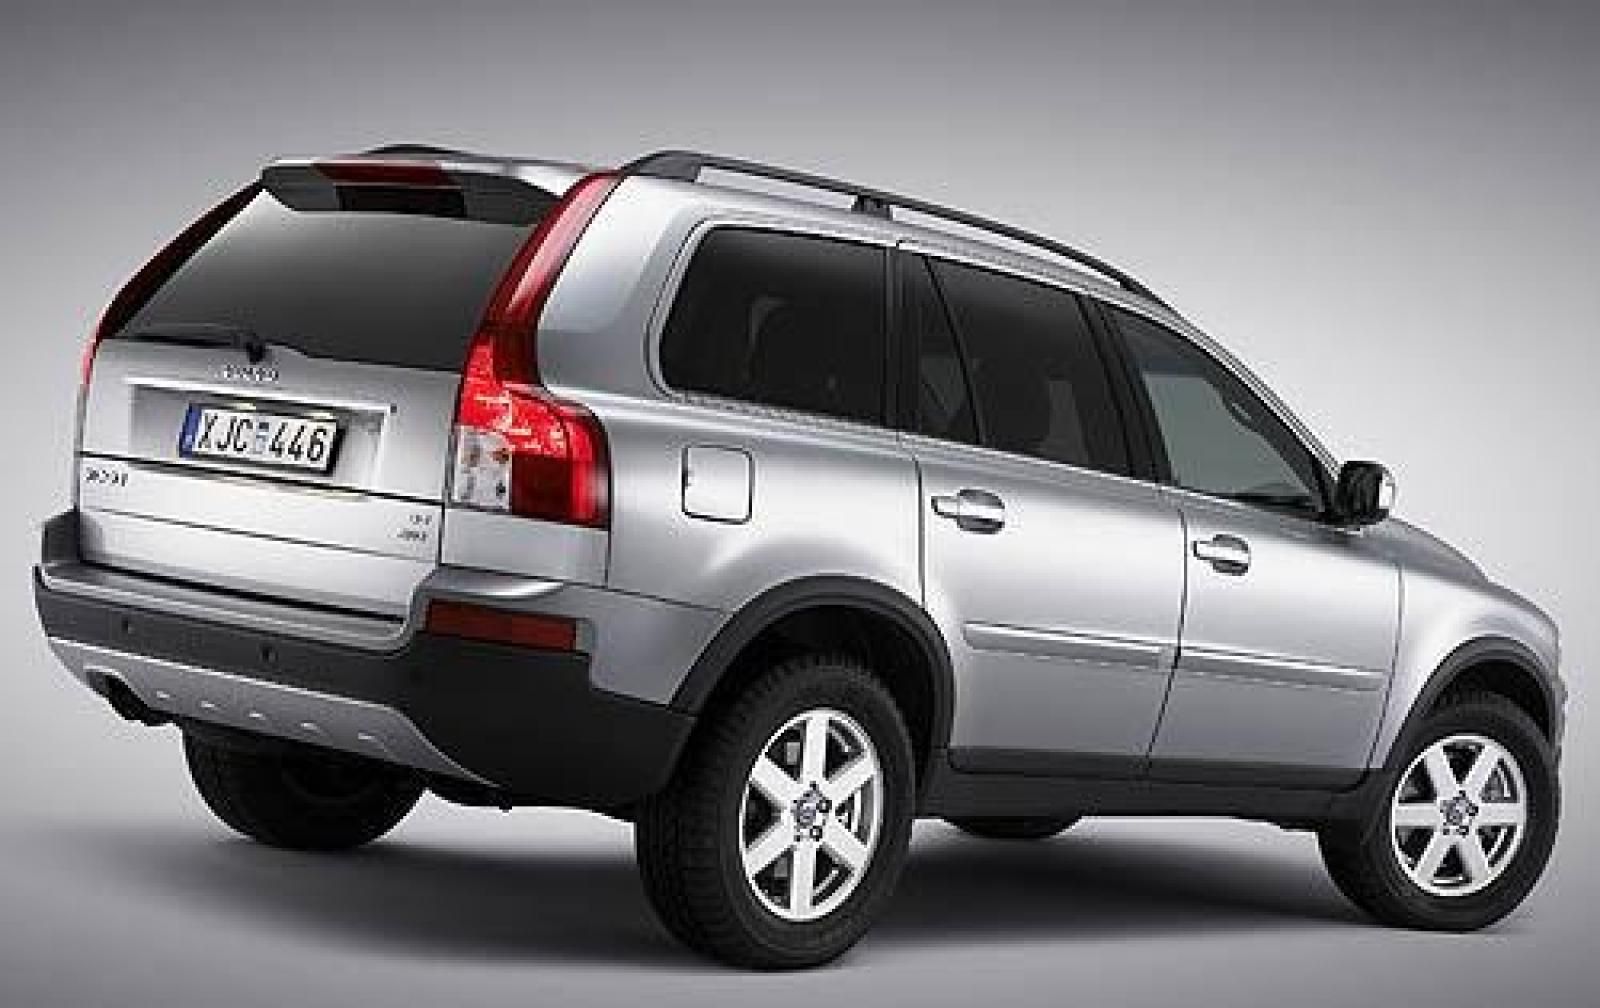 2009 volvo xc90 information and photos zombiedrive. Black Bedroom Furniture Sets. Home Design Ideas